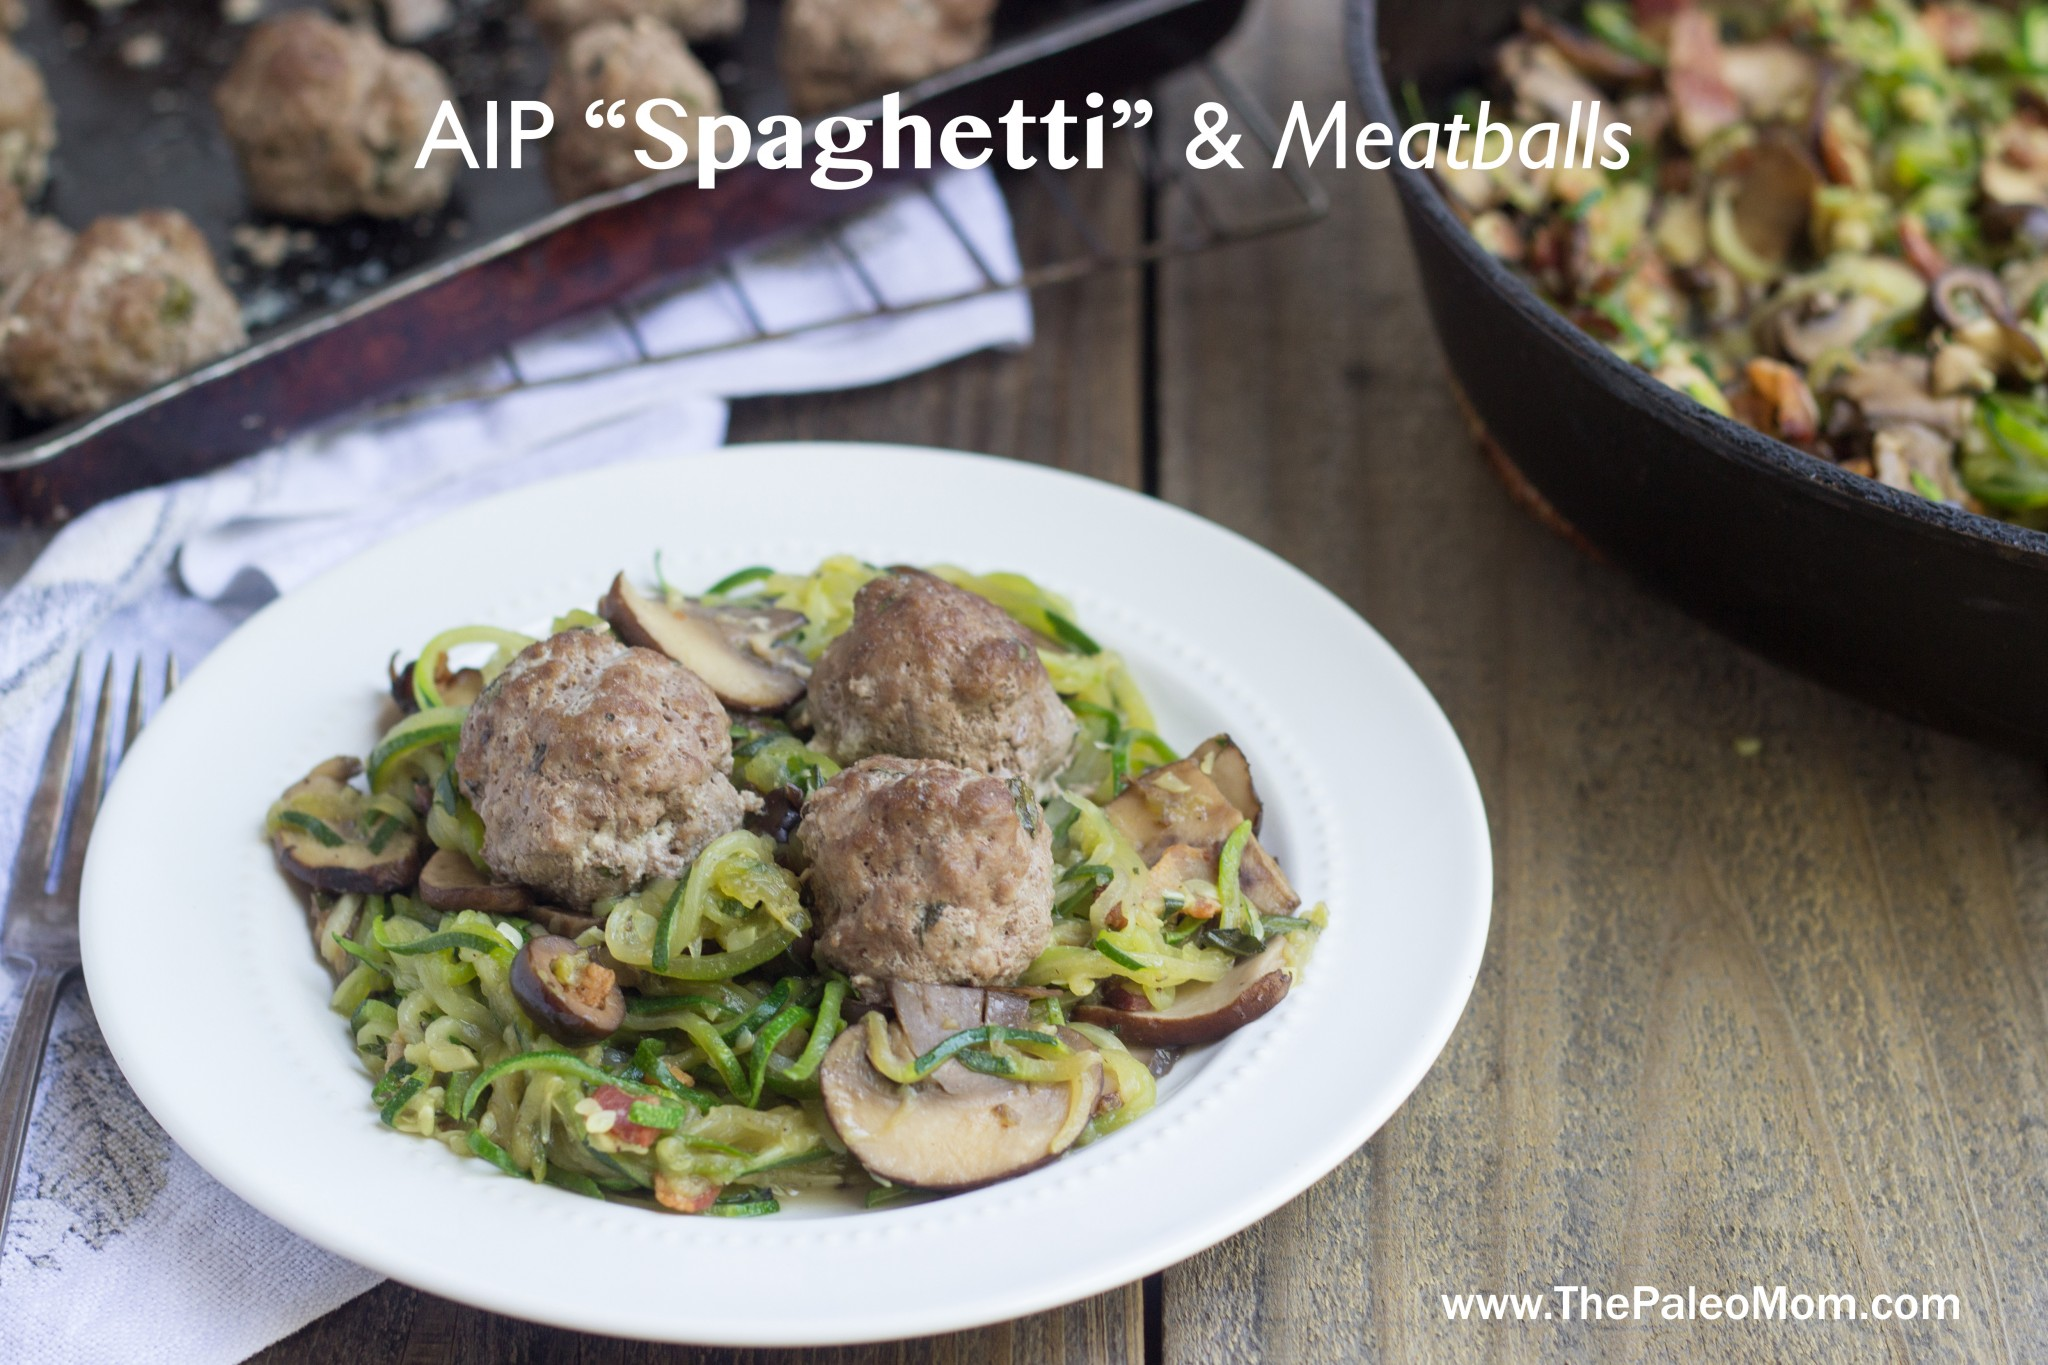 AIP Spaghetti and Meatballs